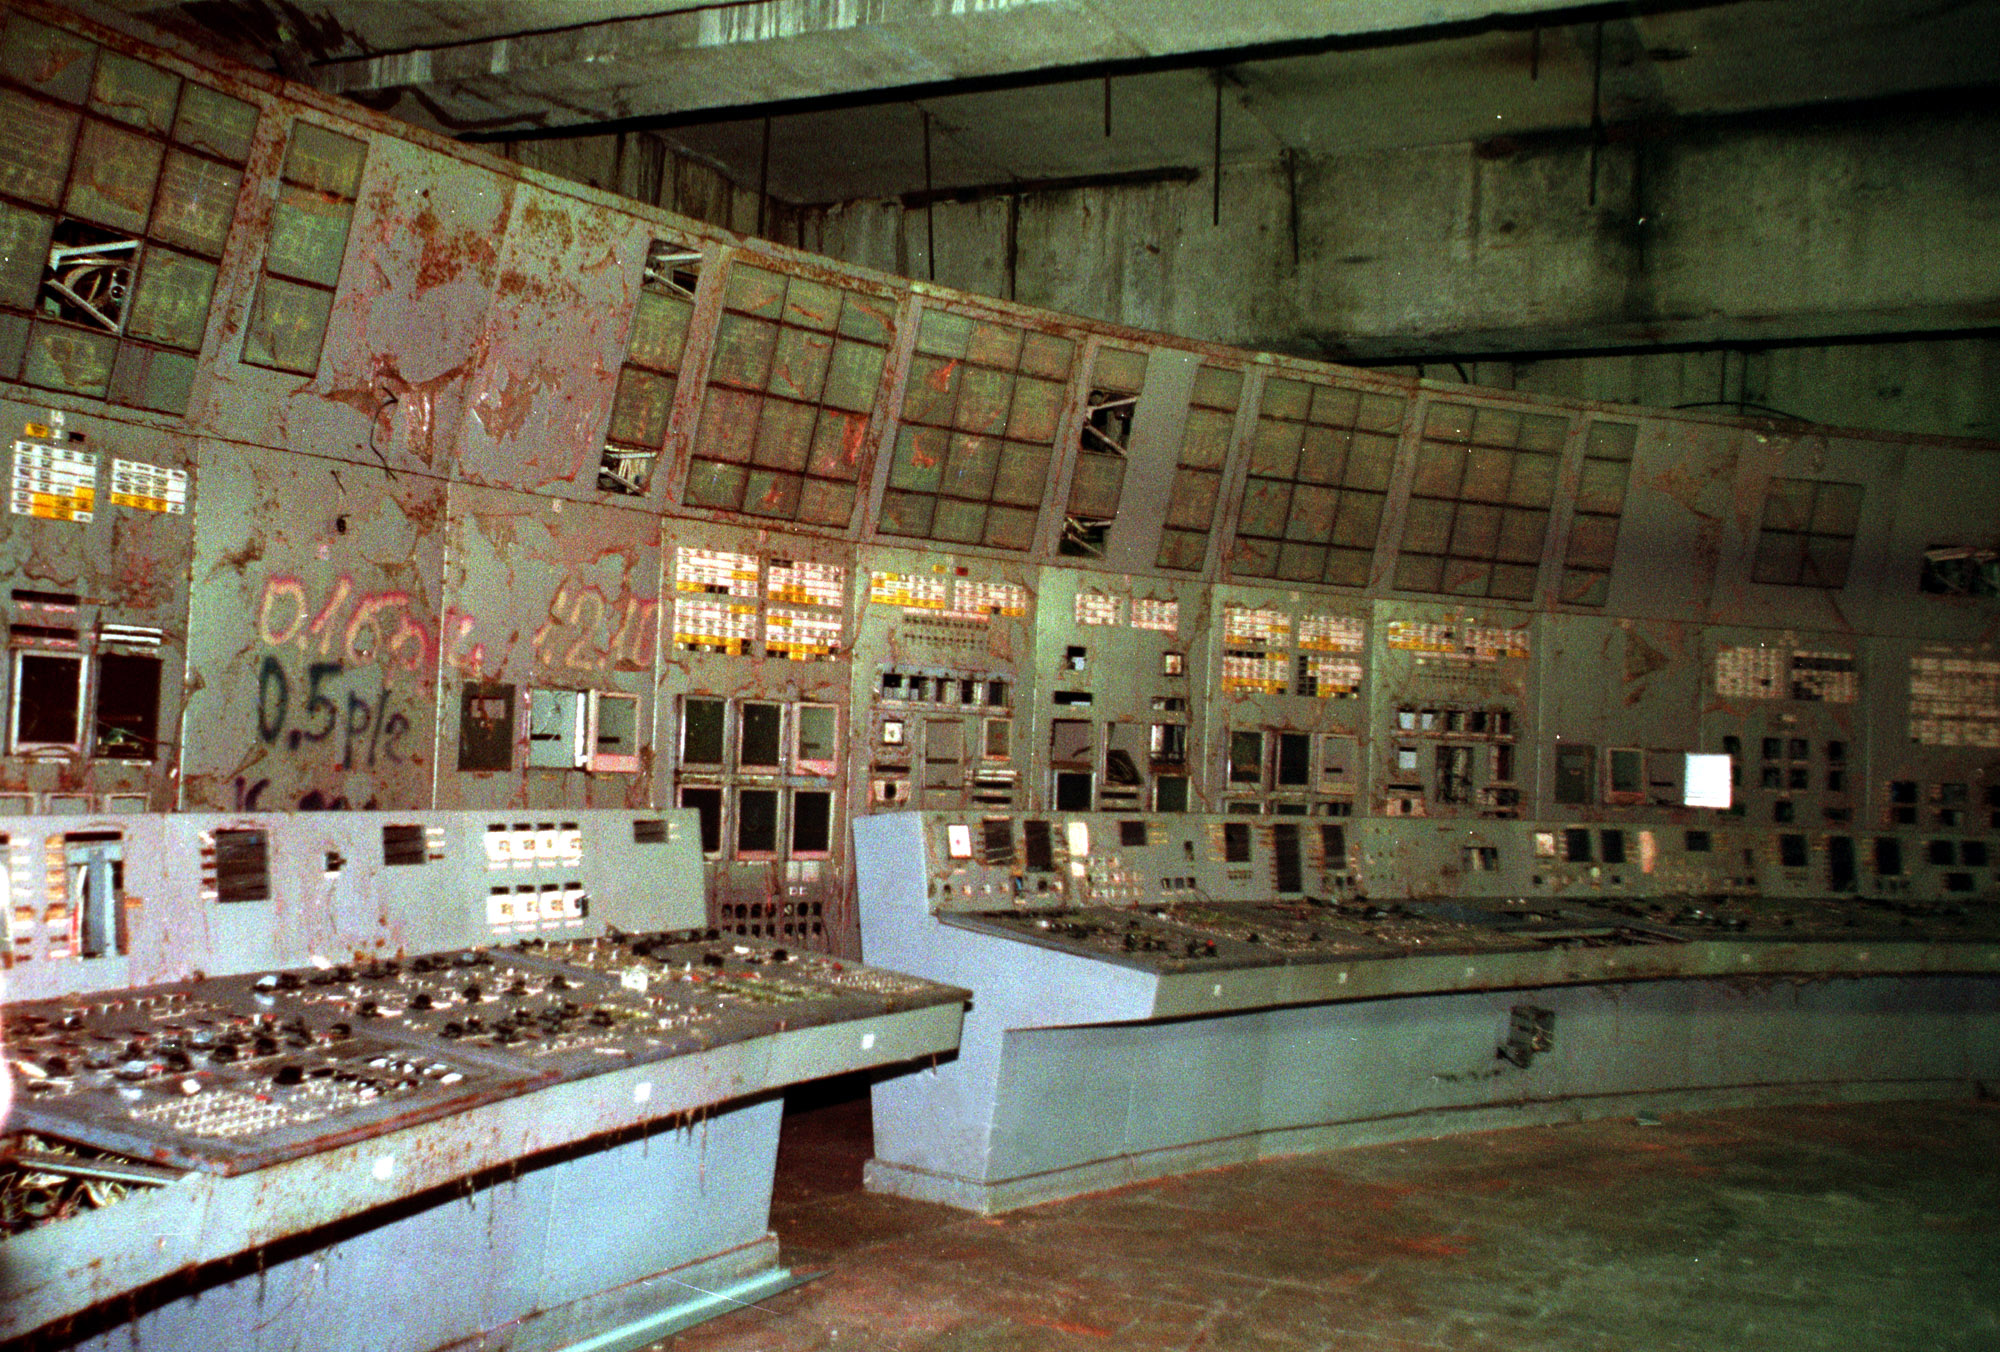 When hubris meets nuclear fission: A Chernobyl liquidator's